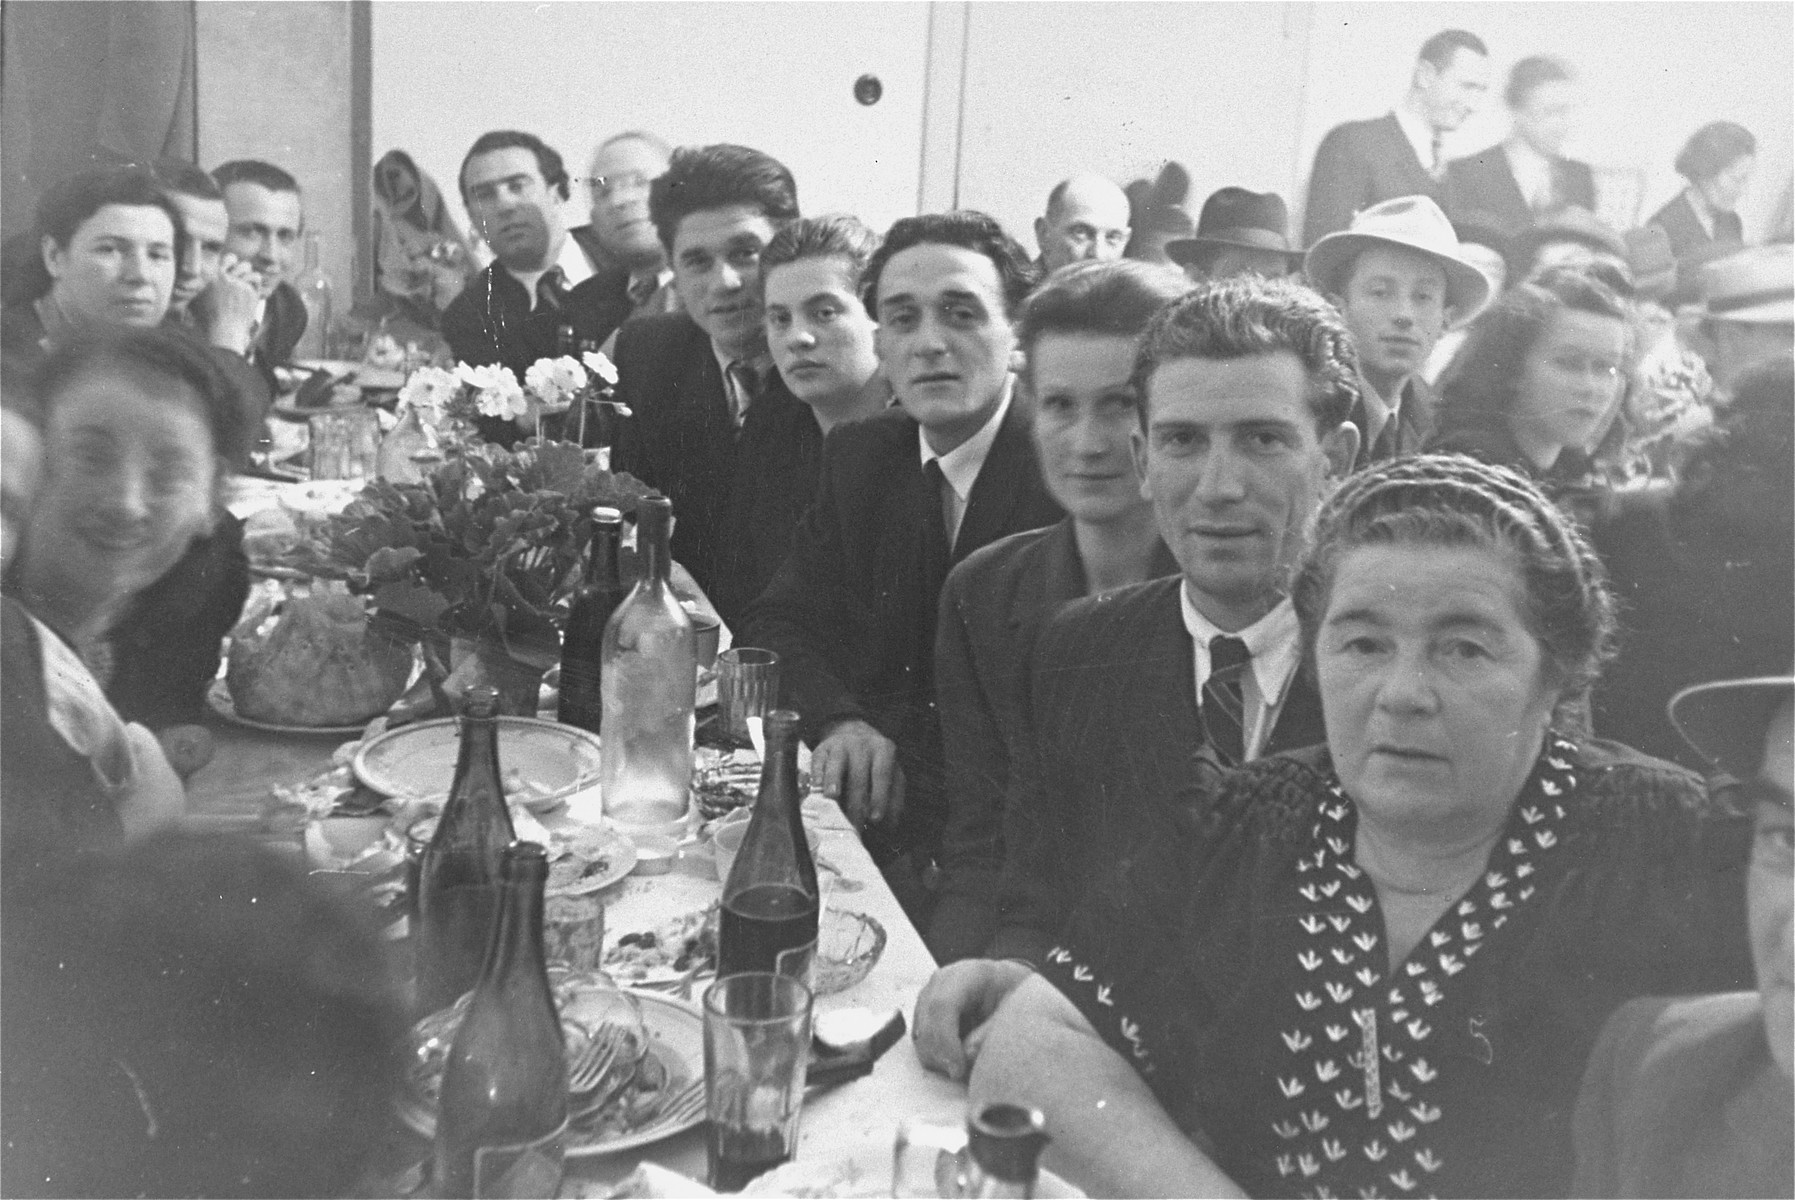 A Jewish wedding celebration in the Ebelsberg DP camp in Linz, Austria.